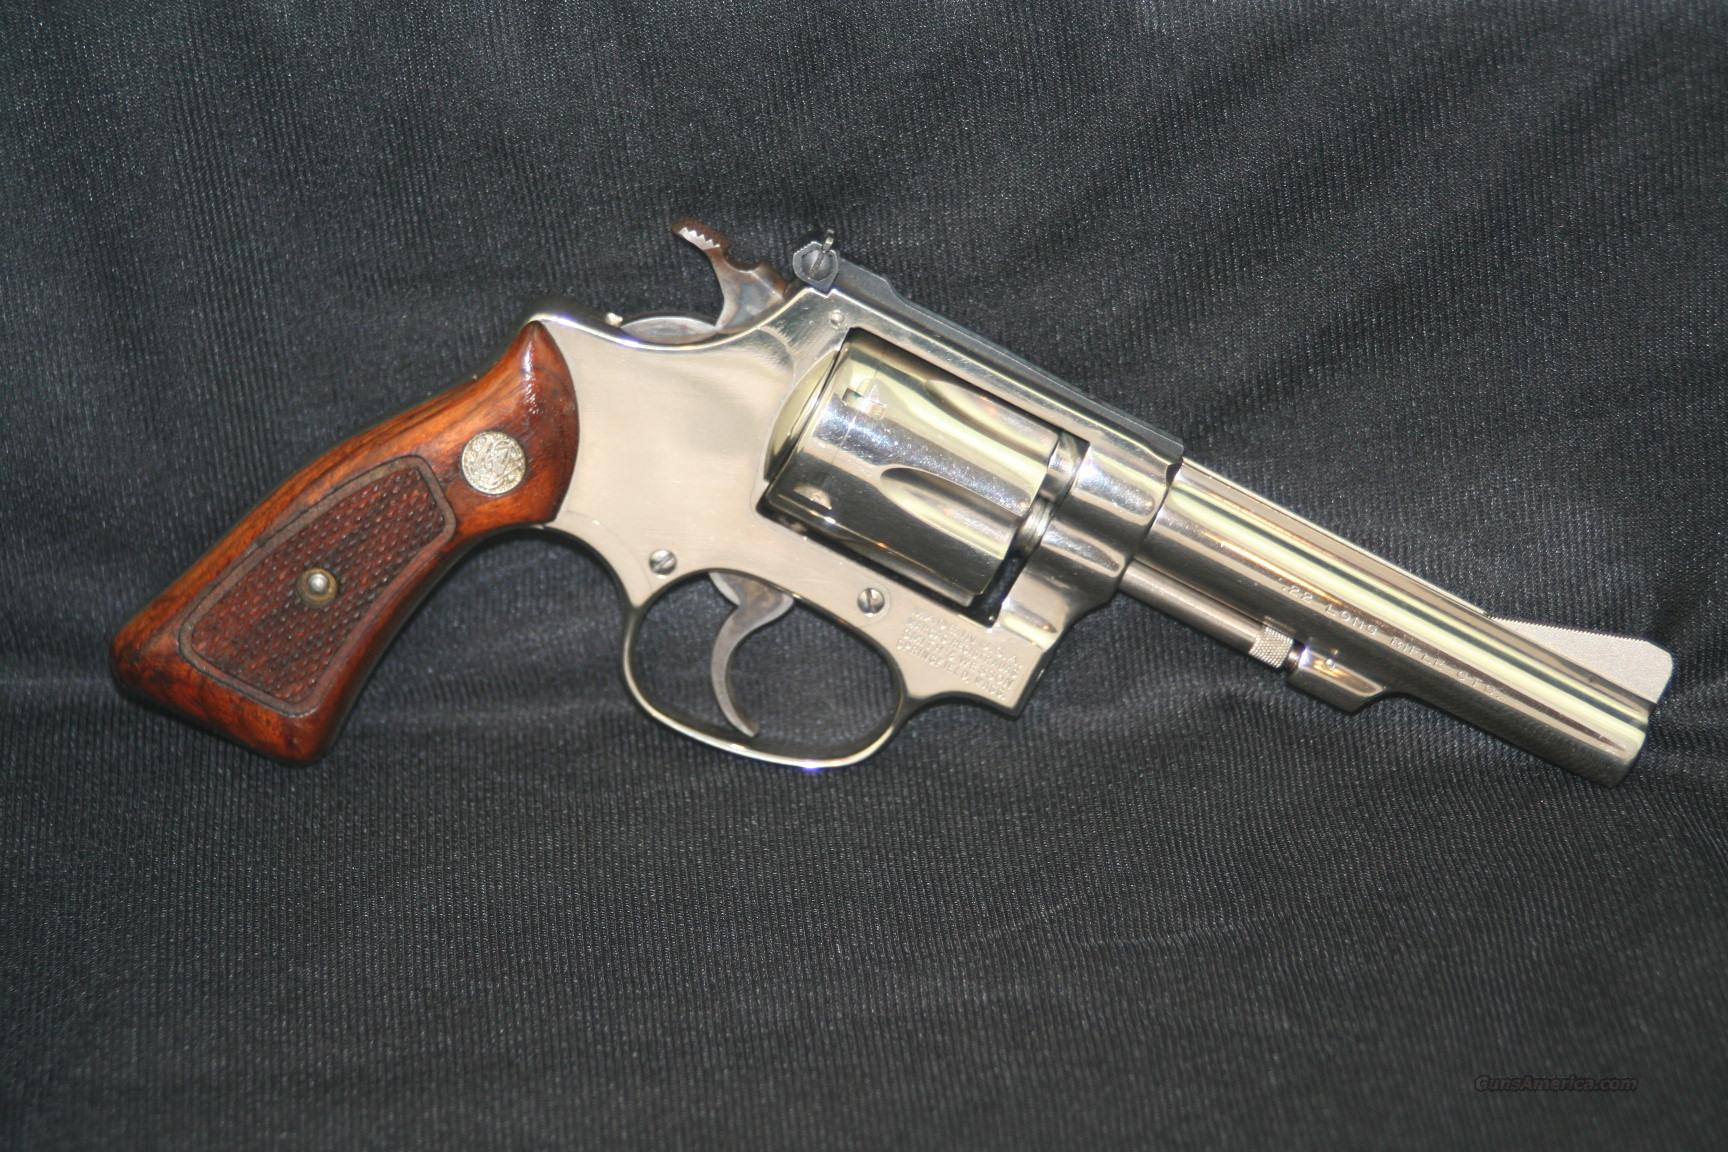 S&W 34-1 Nickle  Guns > Pistols > Smith & Wesson Revolvers > Full Frame Revolver